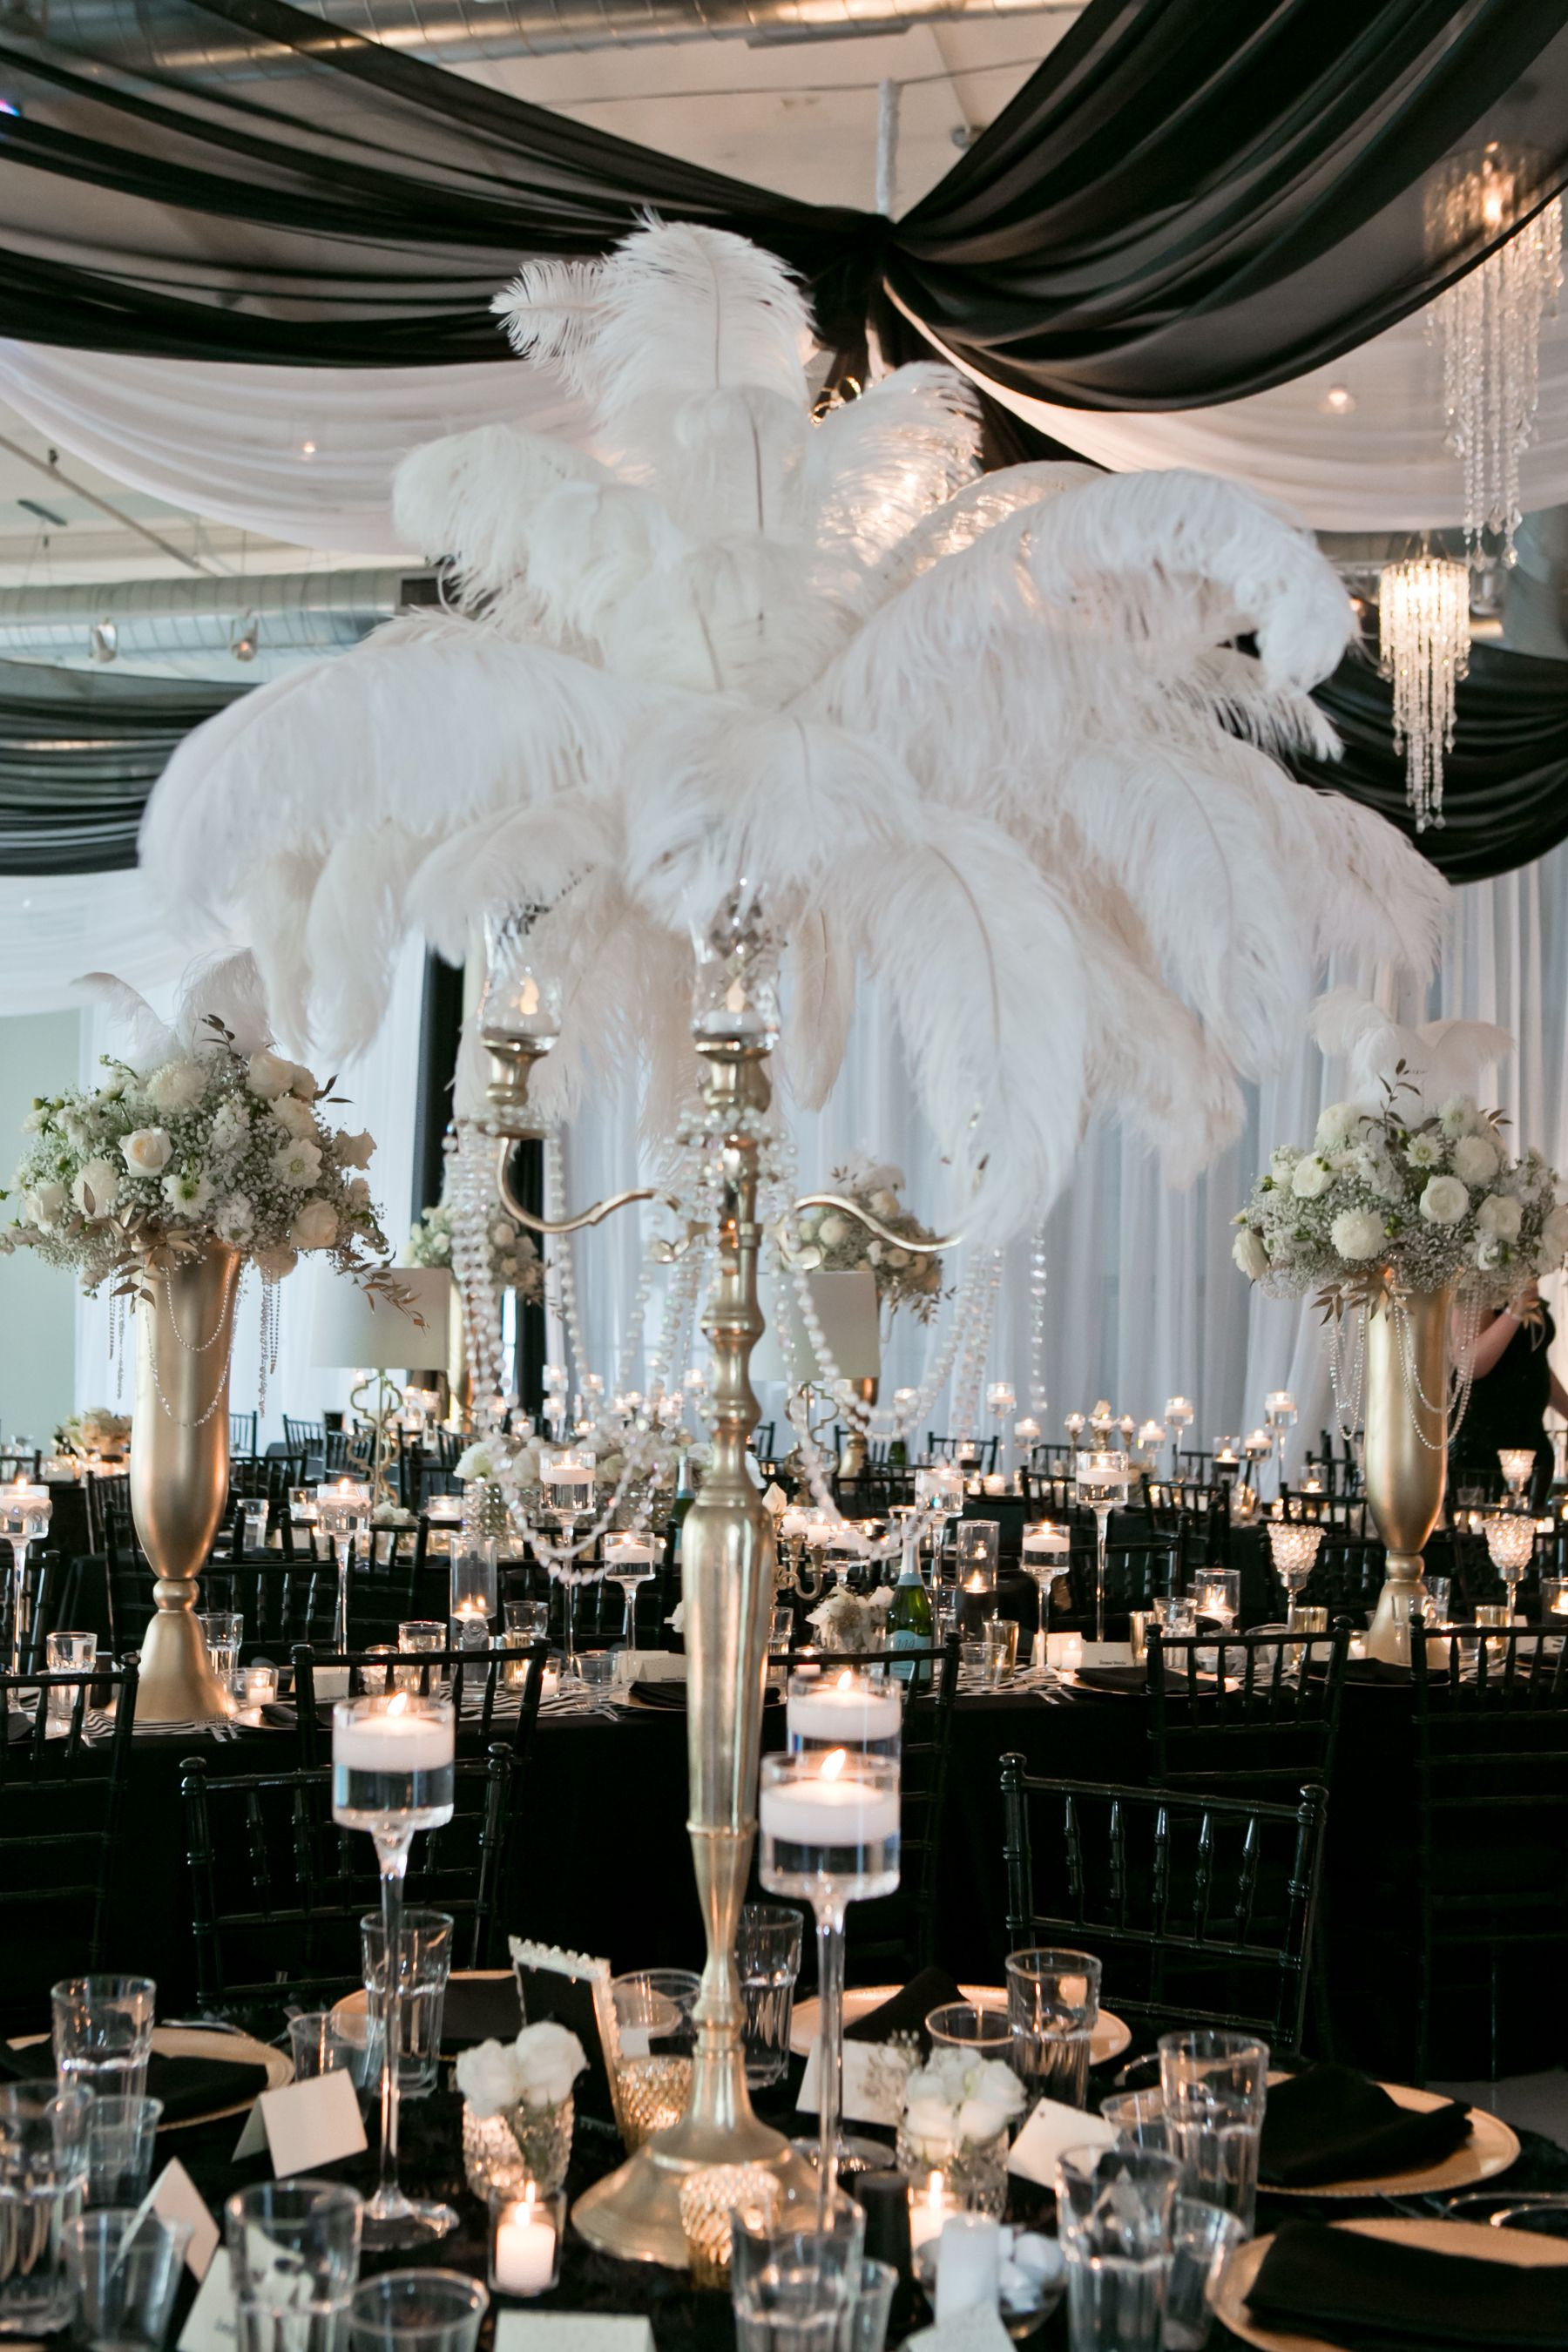 Candelabra Feathers Gold Black By Tamara Wendt Design Glamour N Luxury Wedding